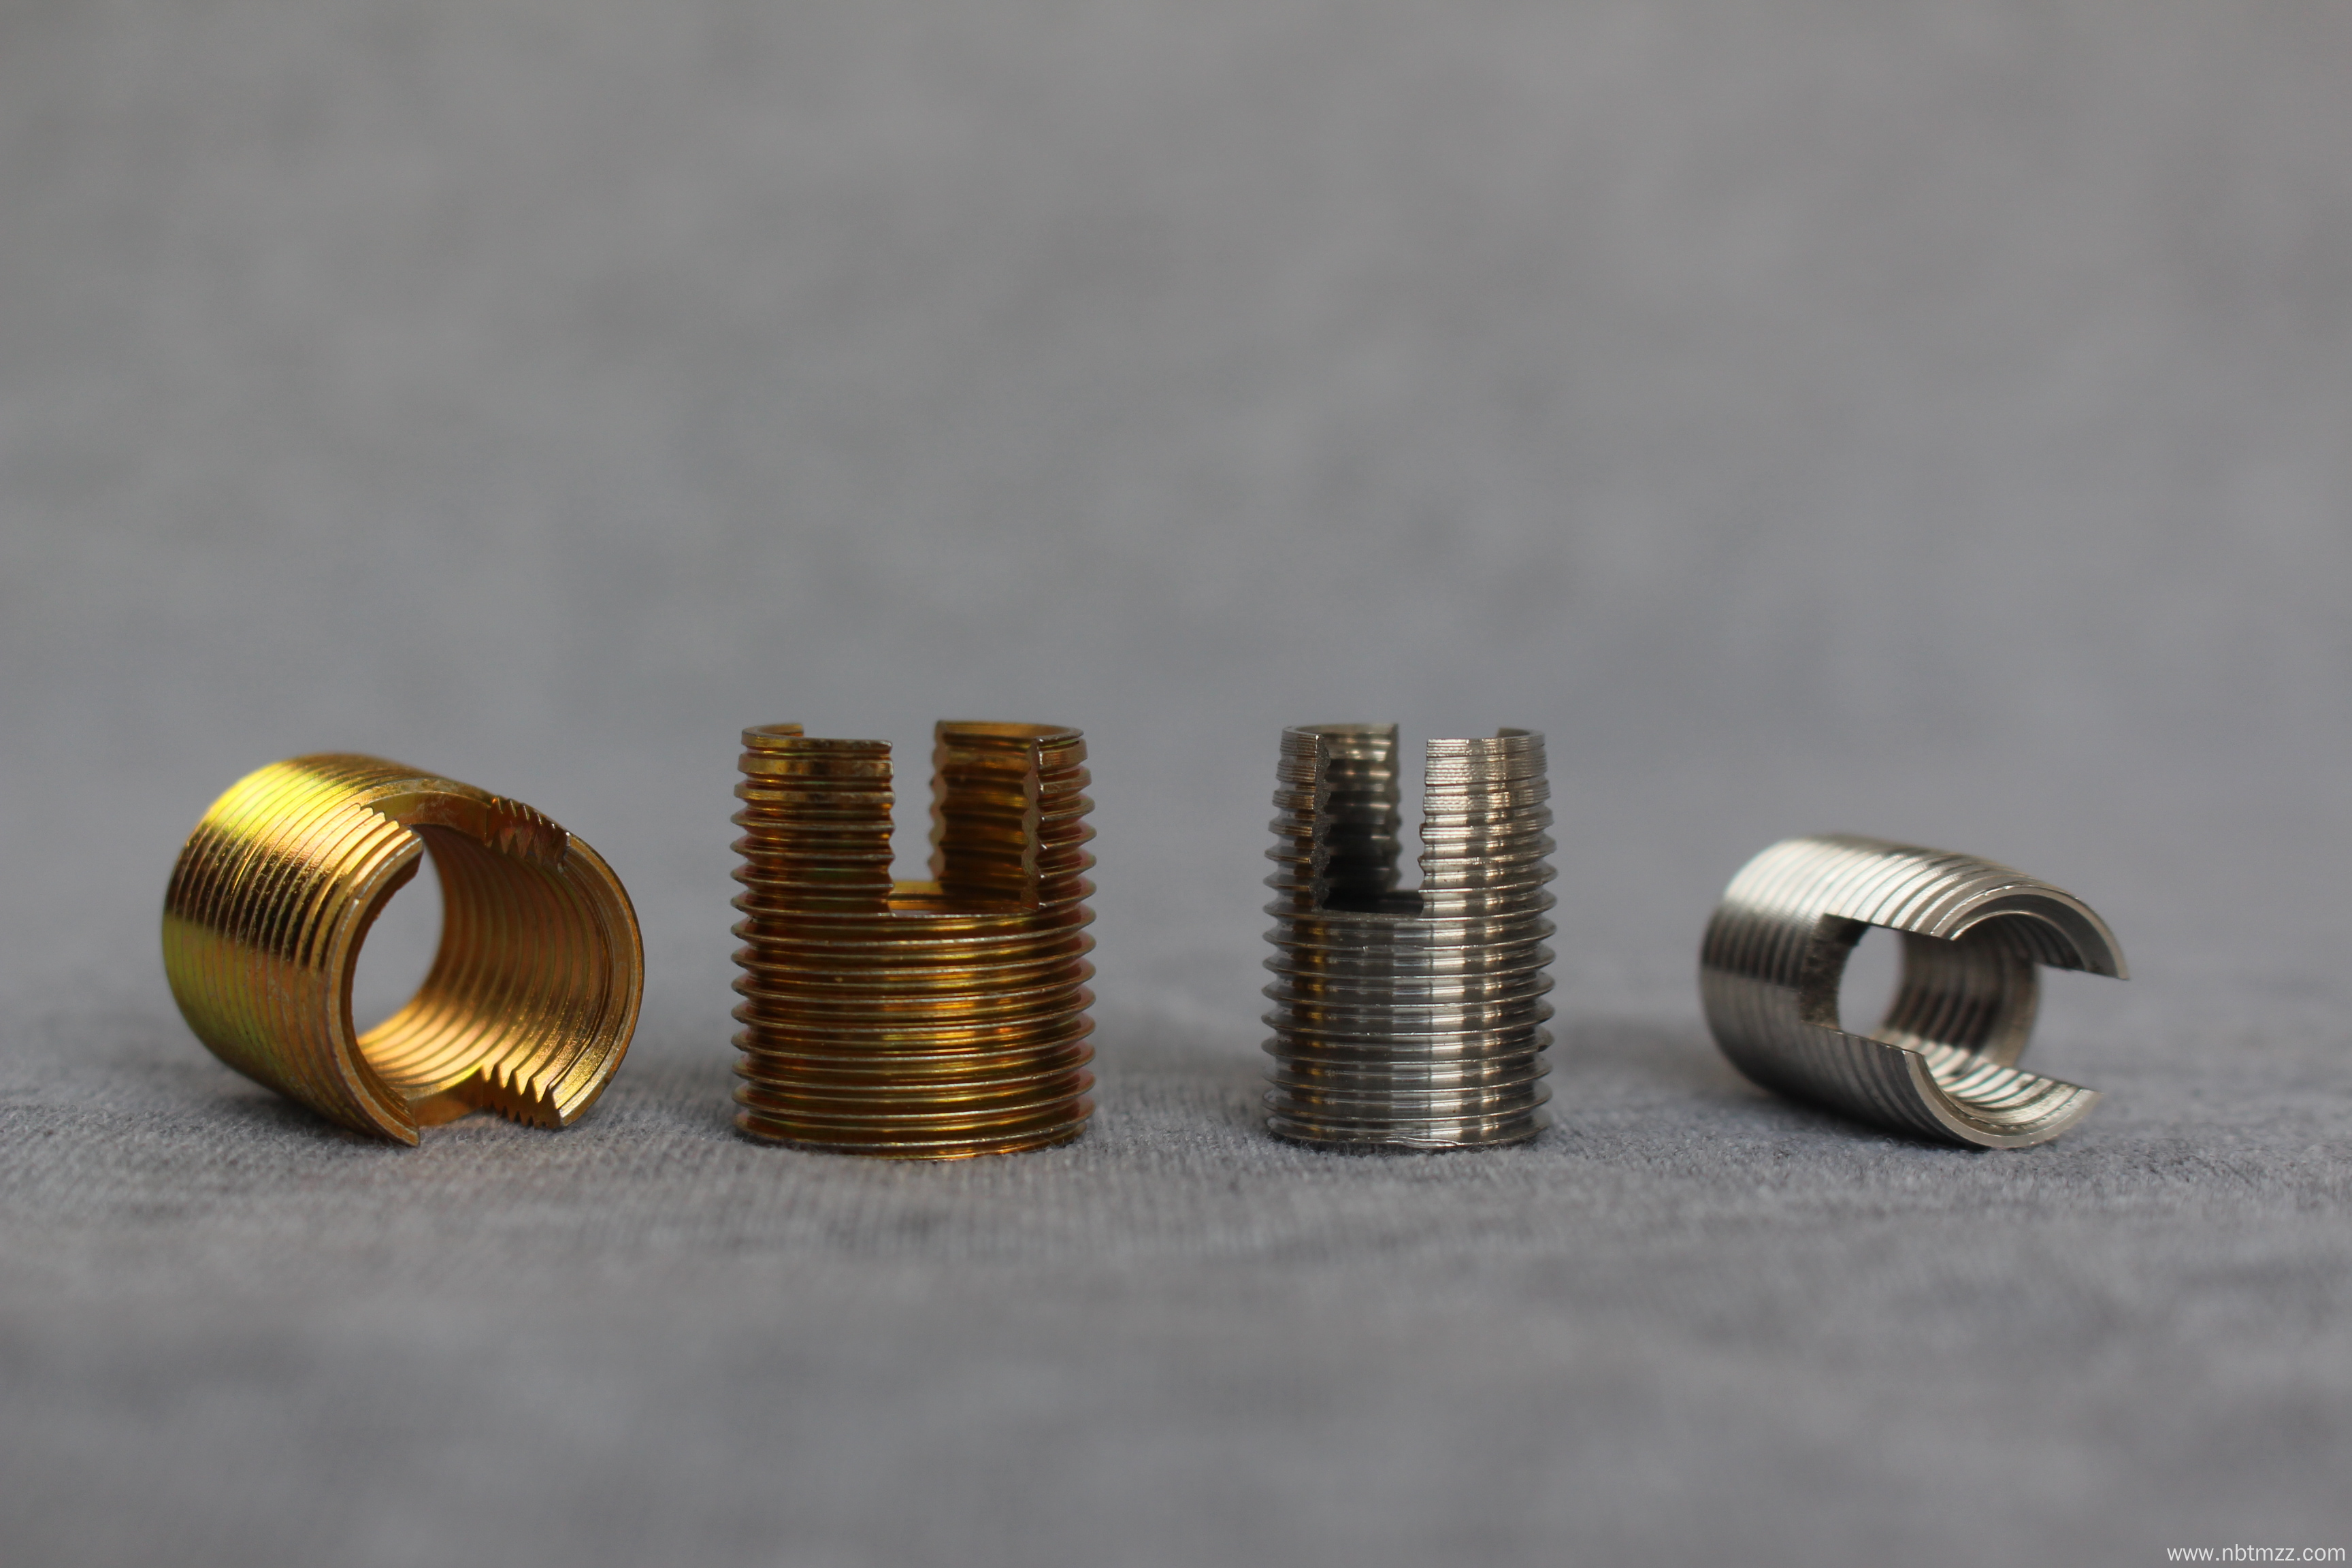 Color zinc plated steel Self-tapping threaded inserts